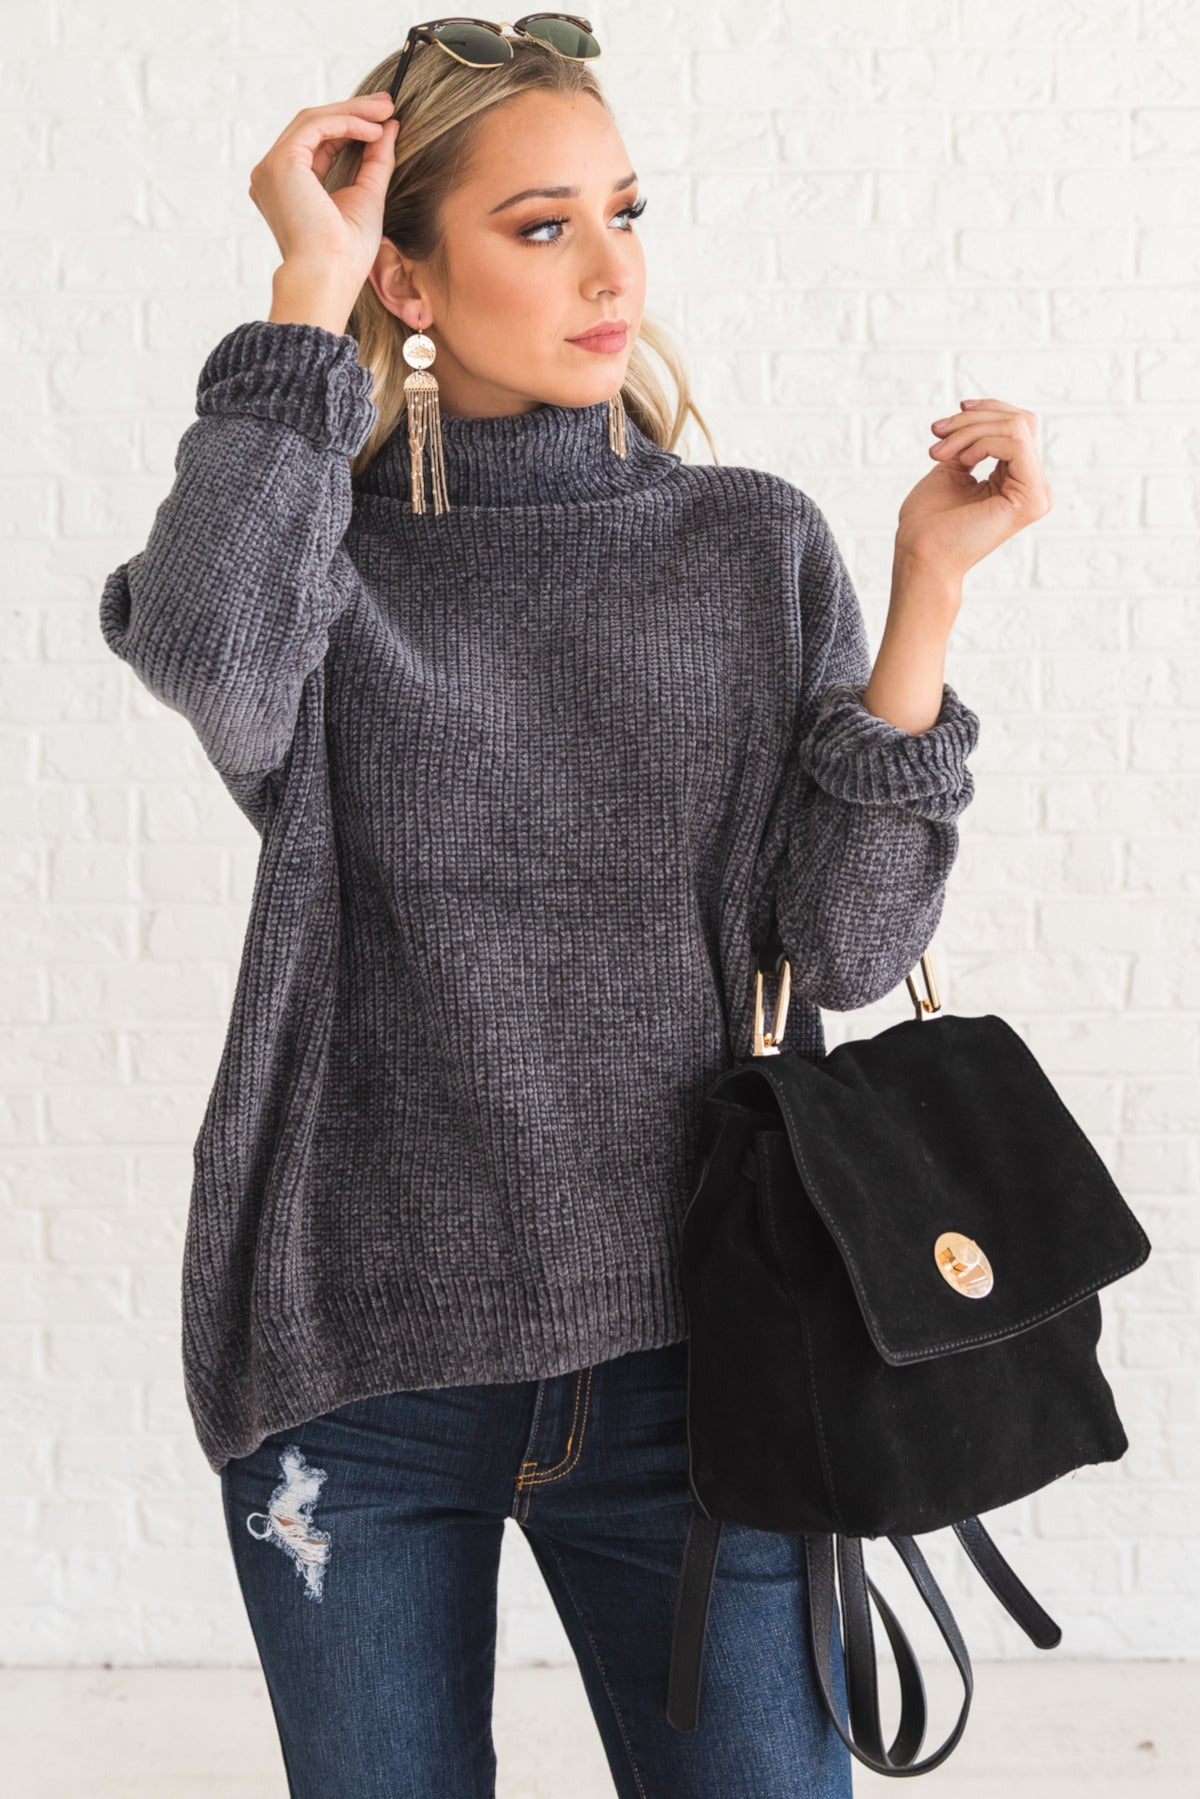 Charcoal Gray Cozy Warm Soft Knit Chenille Sweaters with Cowl Neck